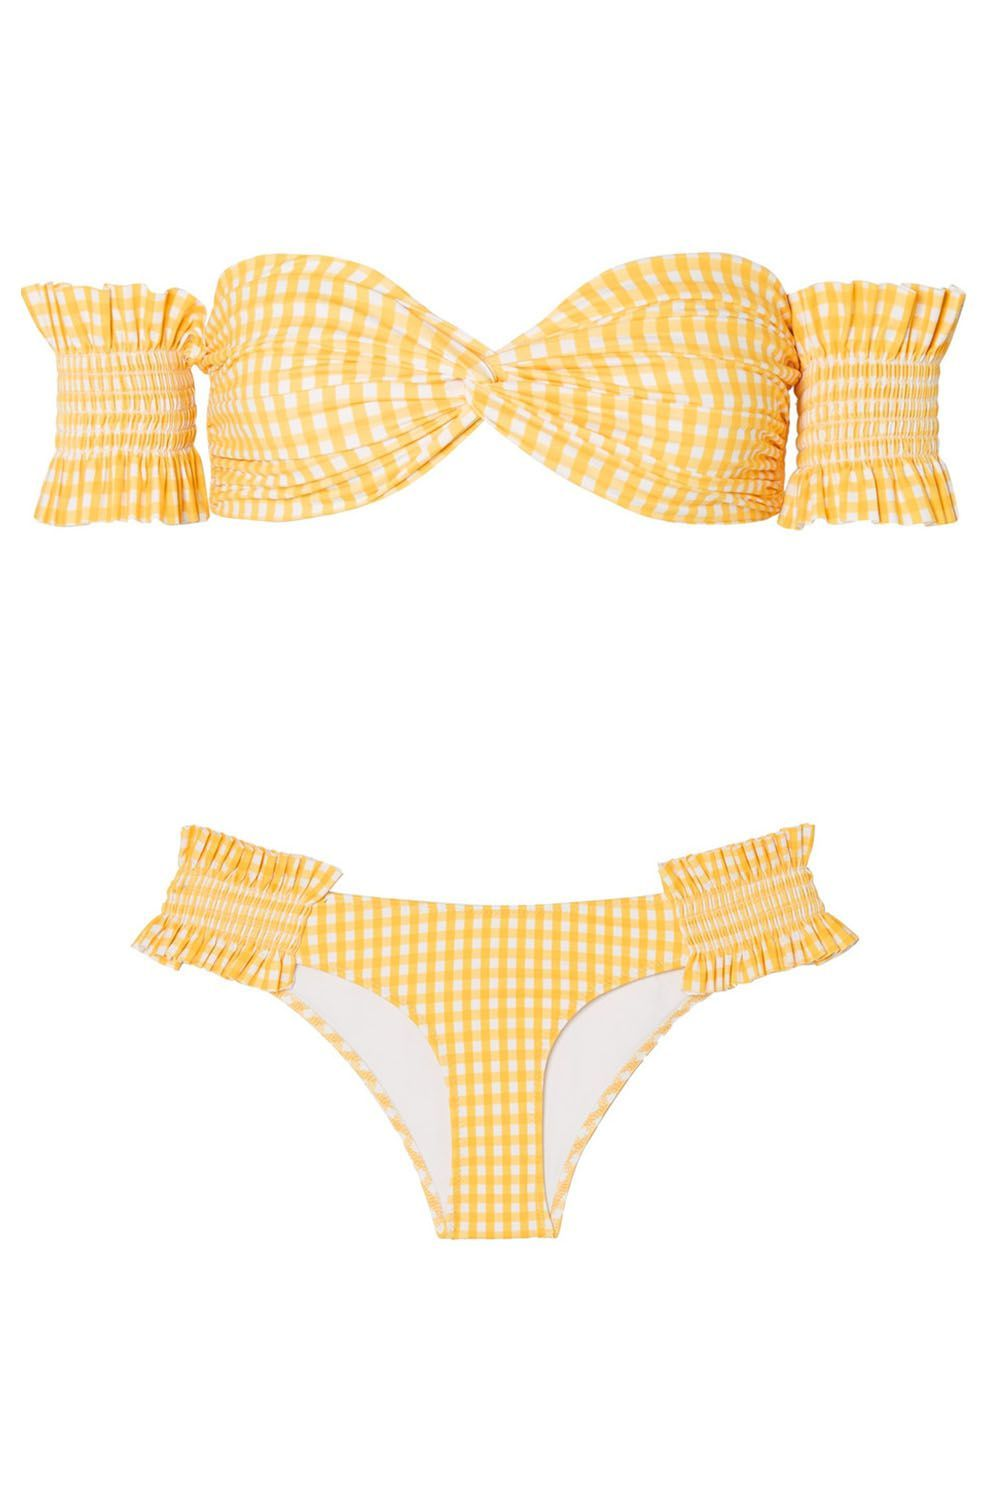 Best for Embracing Summer Yellow Gingham Bikini Caroline Constas net-a-porter.com $315.00 SHOP IT This off-the-shoulder gingham print bikini is for the gal who loves to sit out by the pool while sipping an aperol spritz. Physical exertion is out the picture because she's on vacation and all she wants to do is lay out and tan.